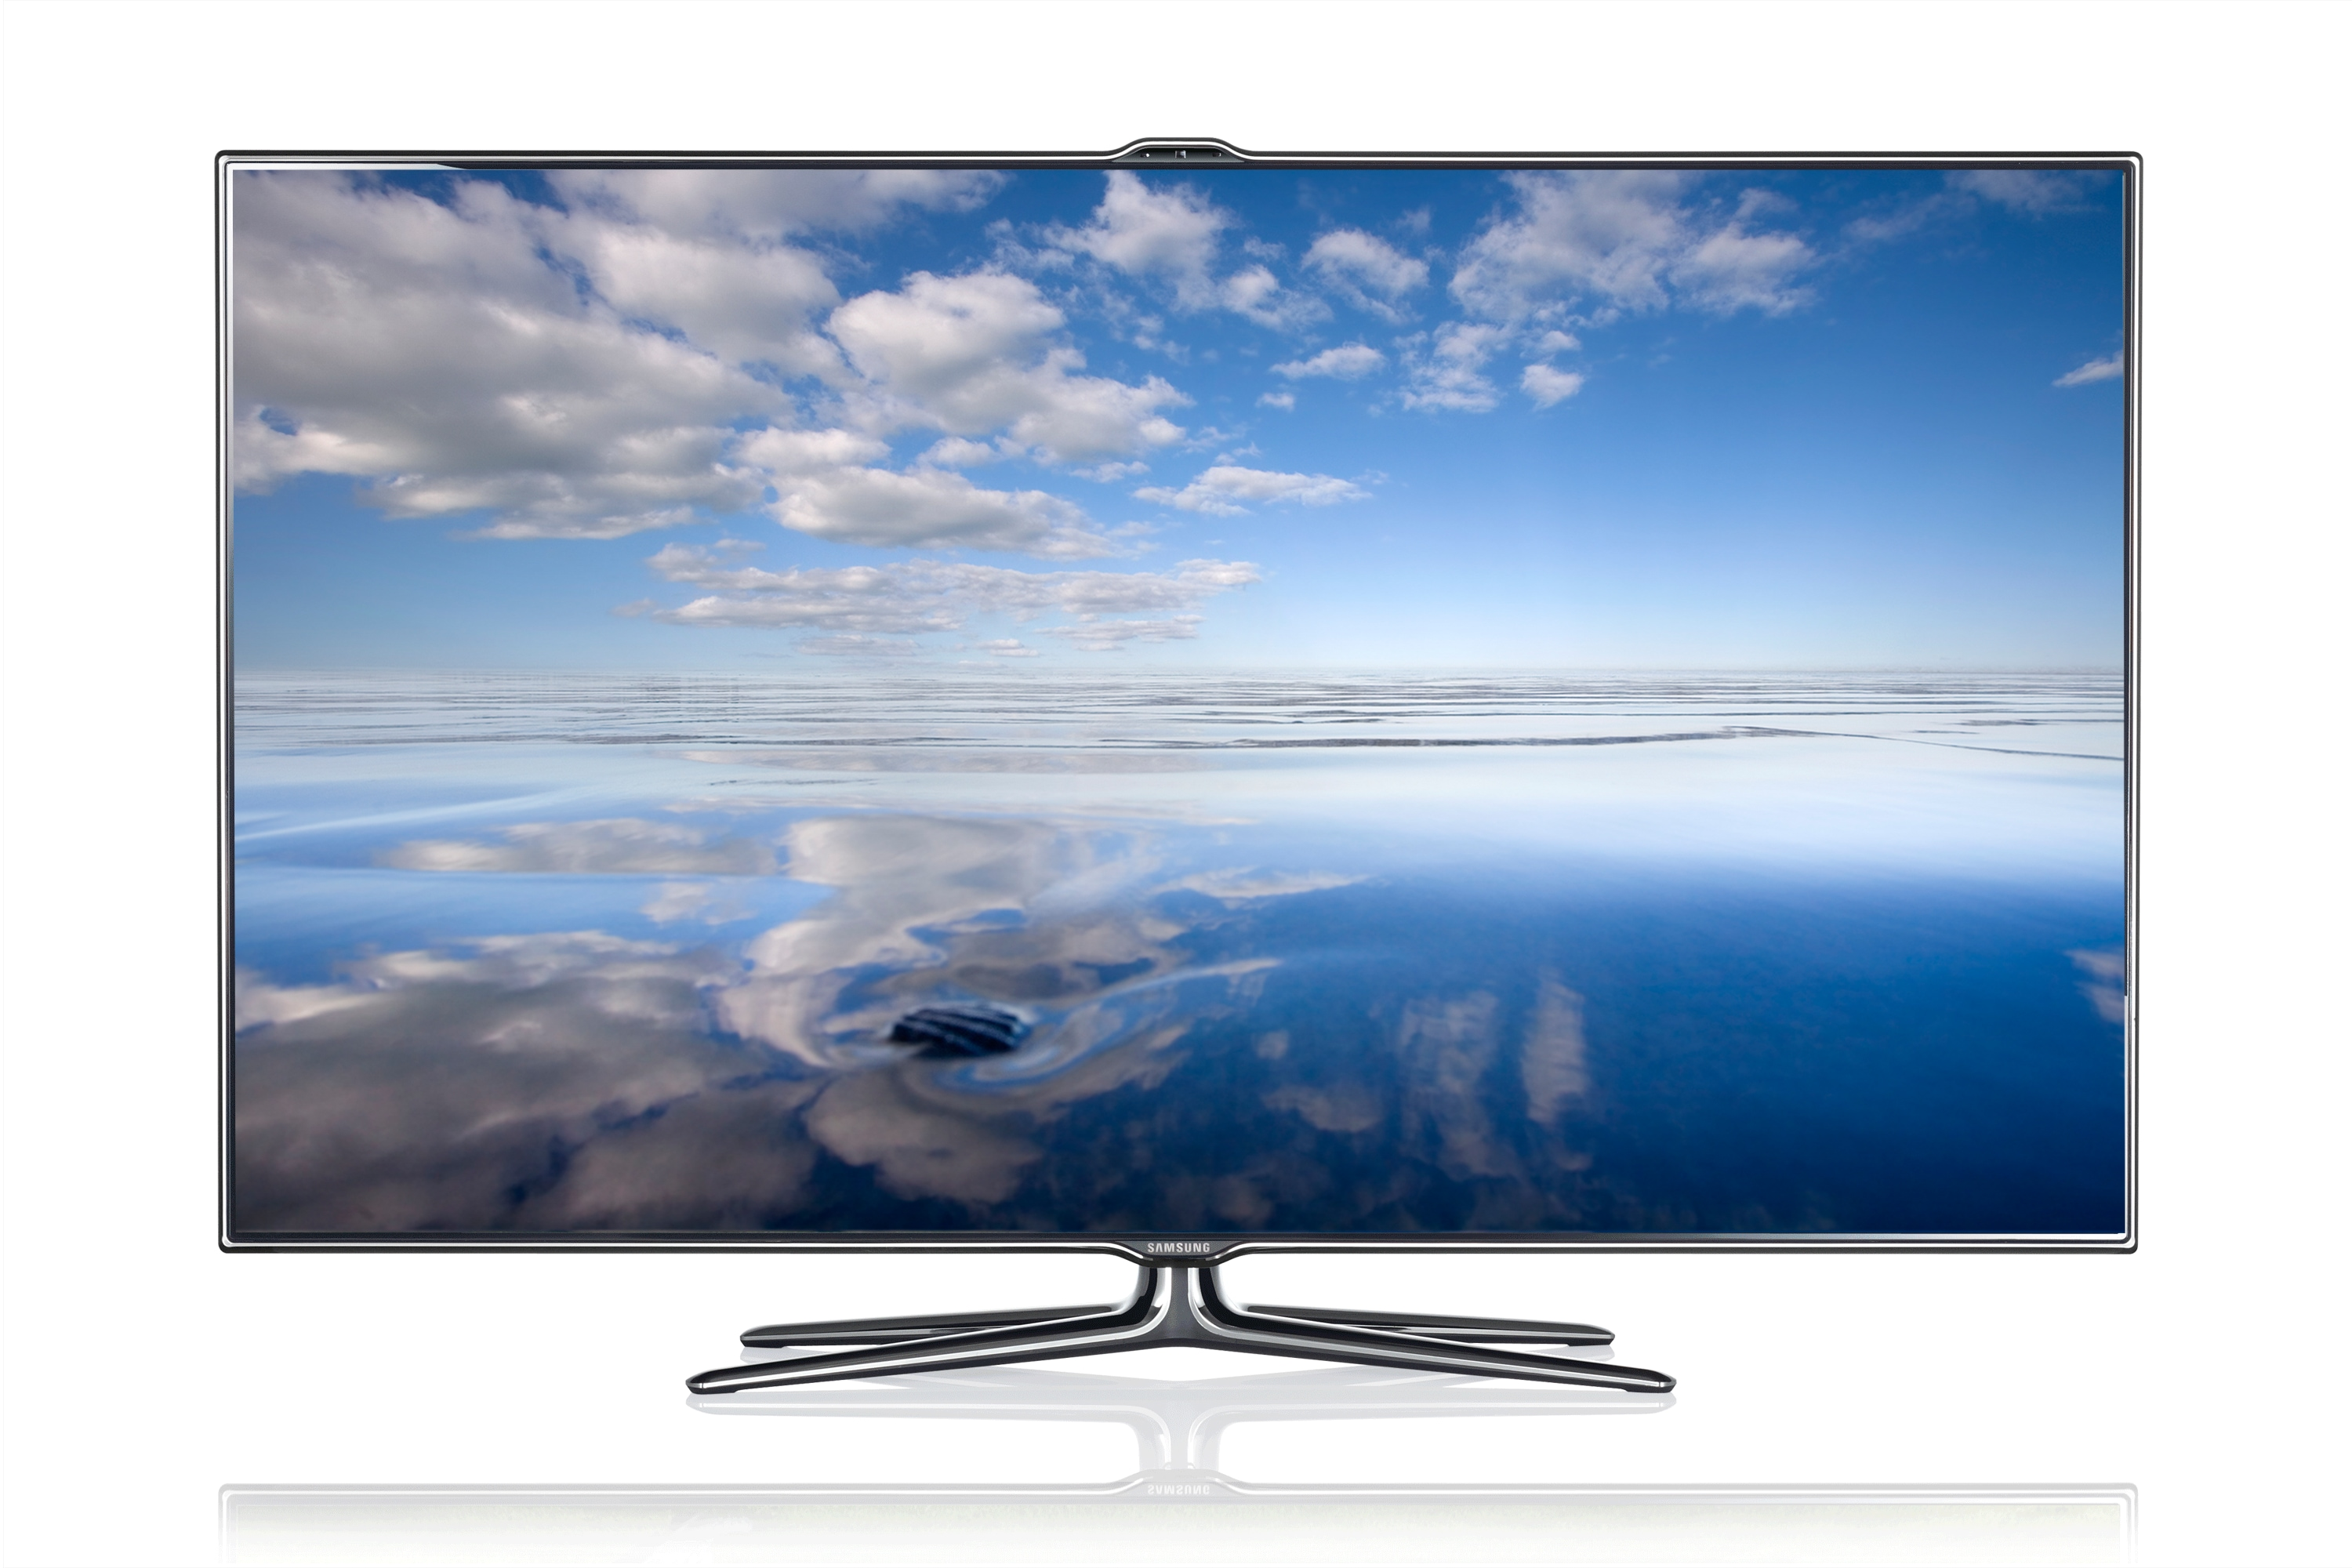 55 7500 Series smart 3D LED TV